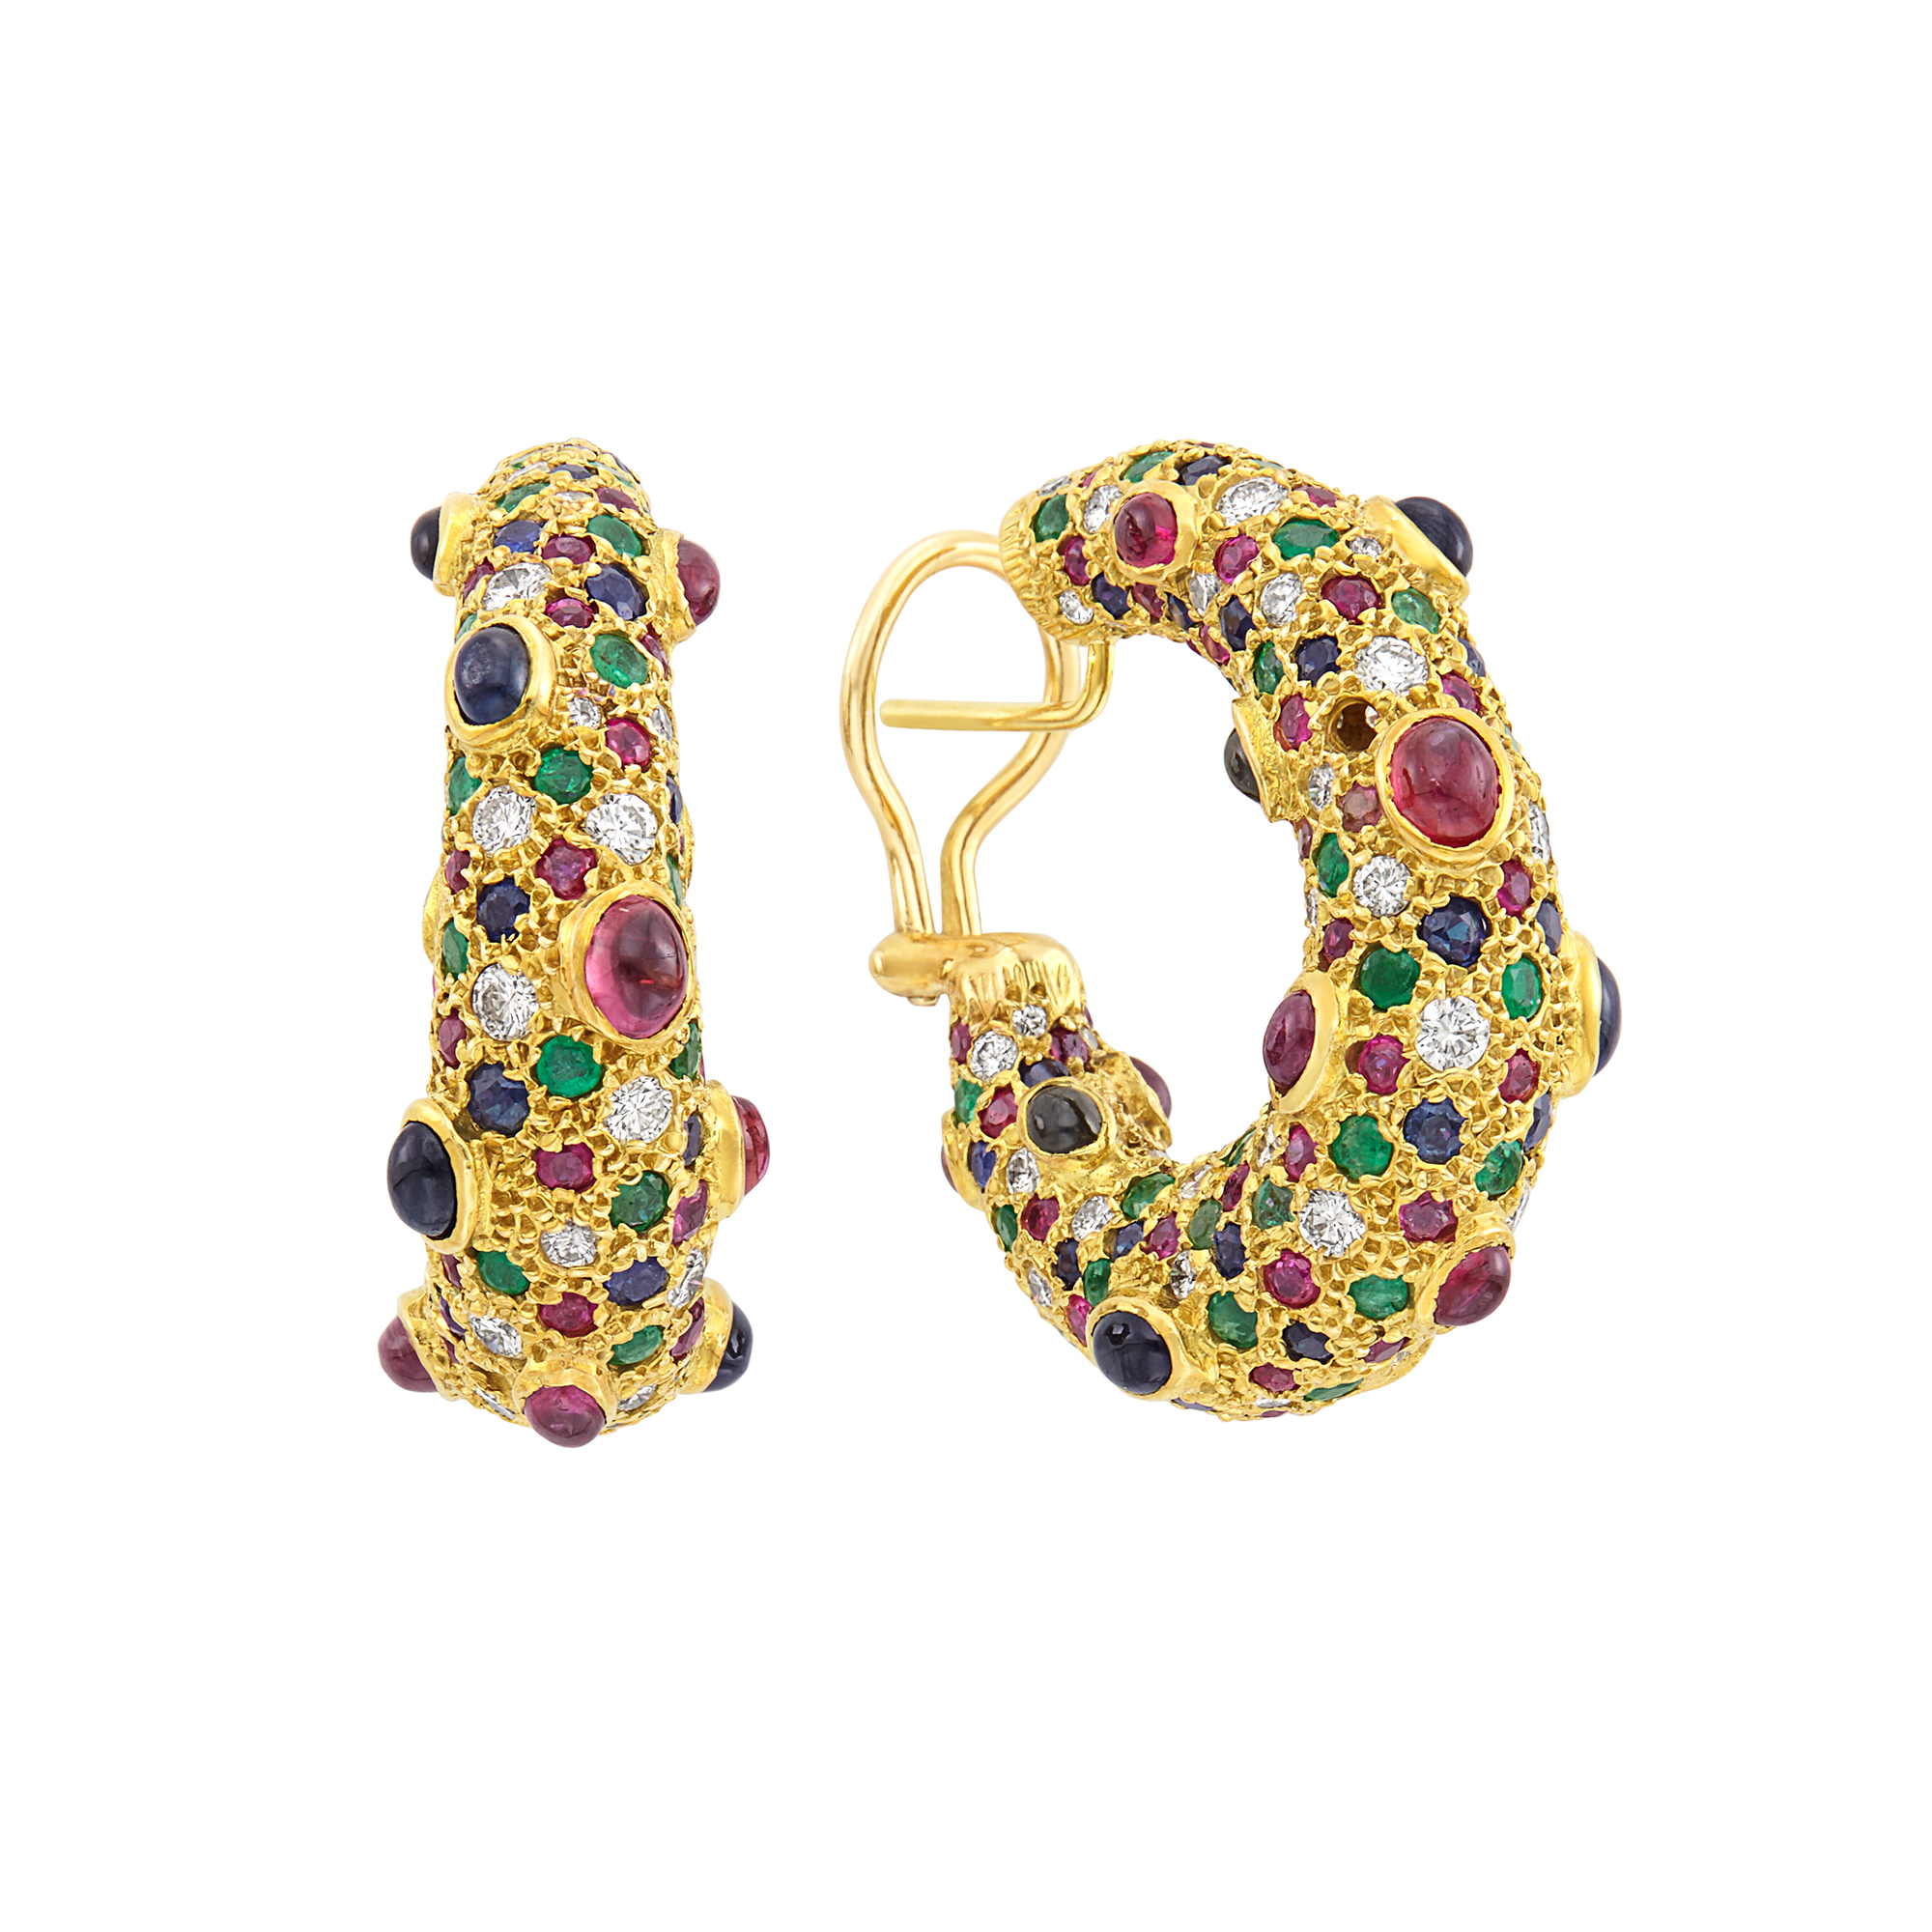 Lot image - Pair of Gold, Diamond and Gem-Set Hoop Earrings